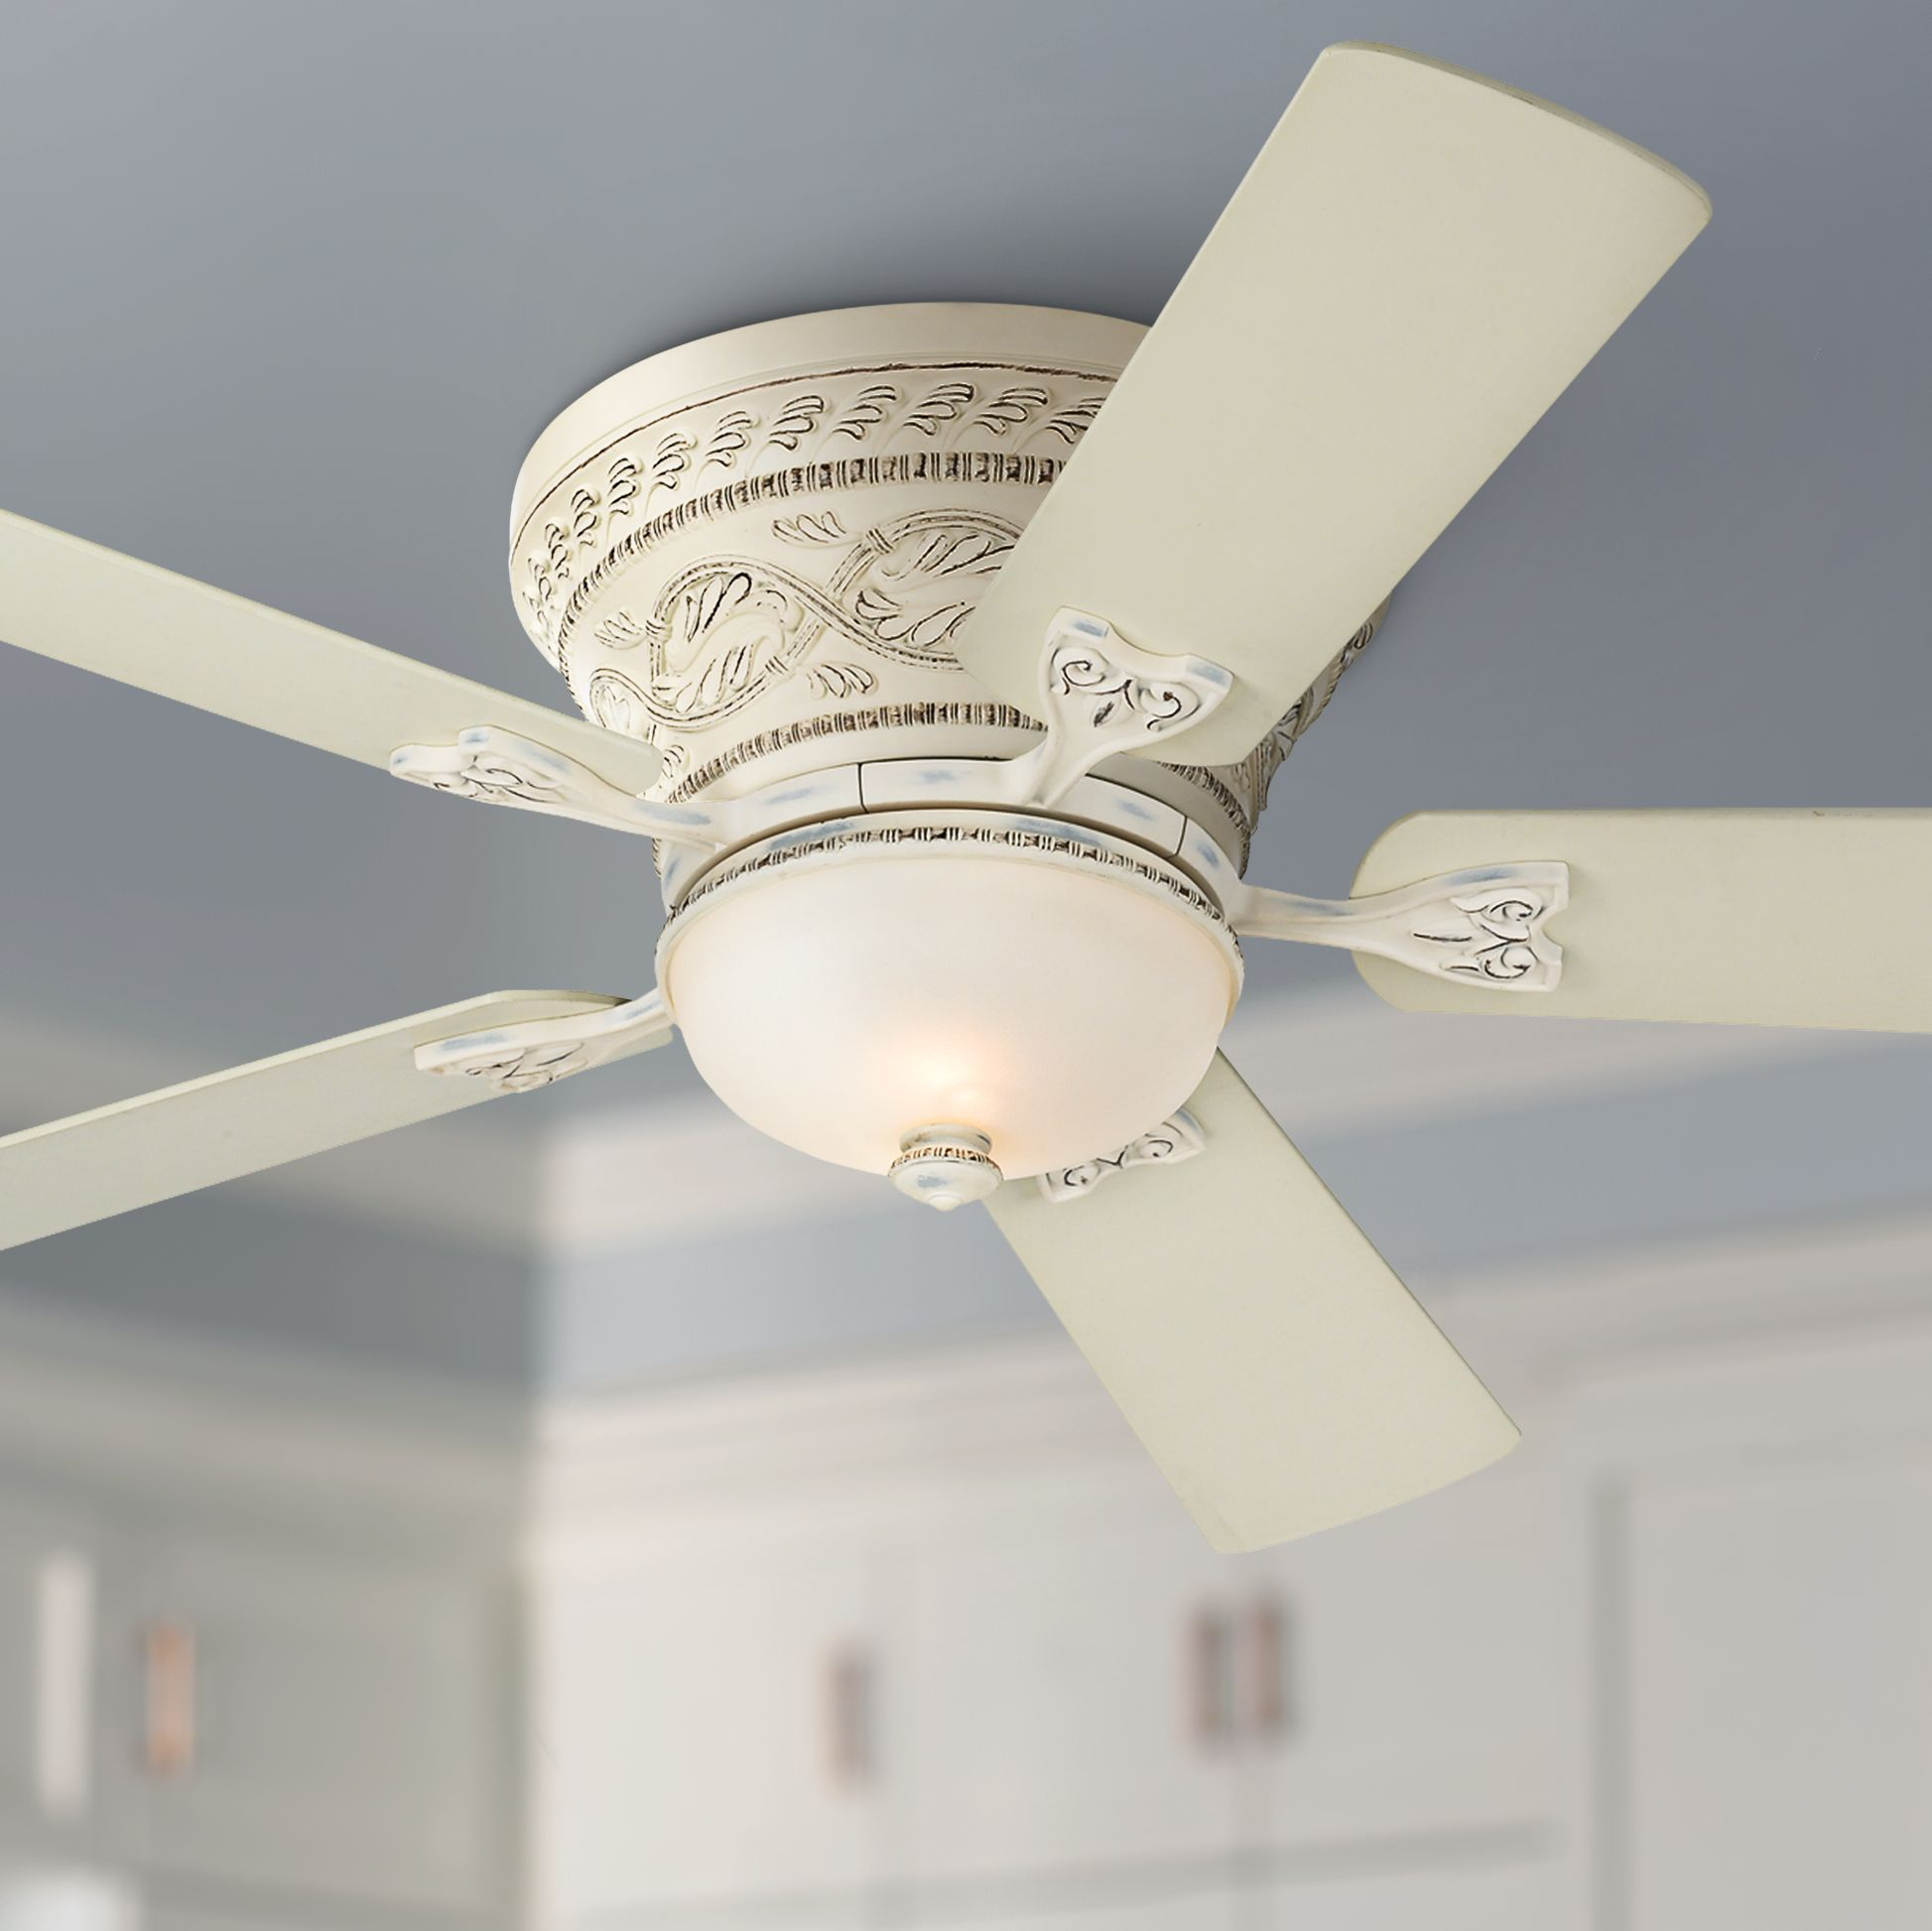 52 Casa Vieja French Hugger Ceiling Fan With Light Led Dimmable Remote Rubbed White Frosted Glass For Living Room Kitchen Bedroom Walmart Com Walmart Com